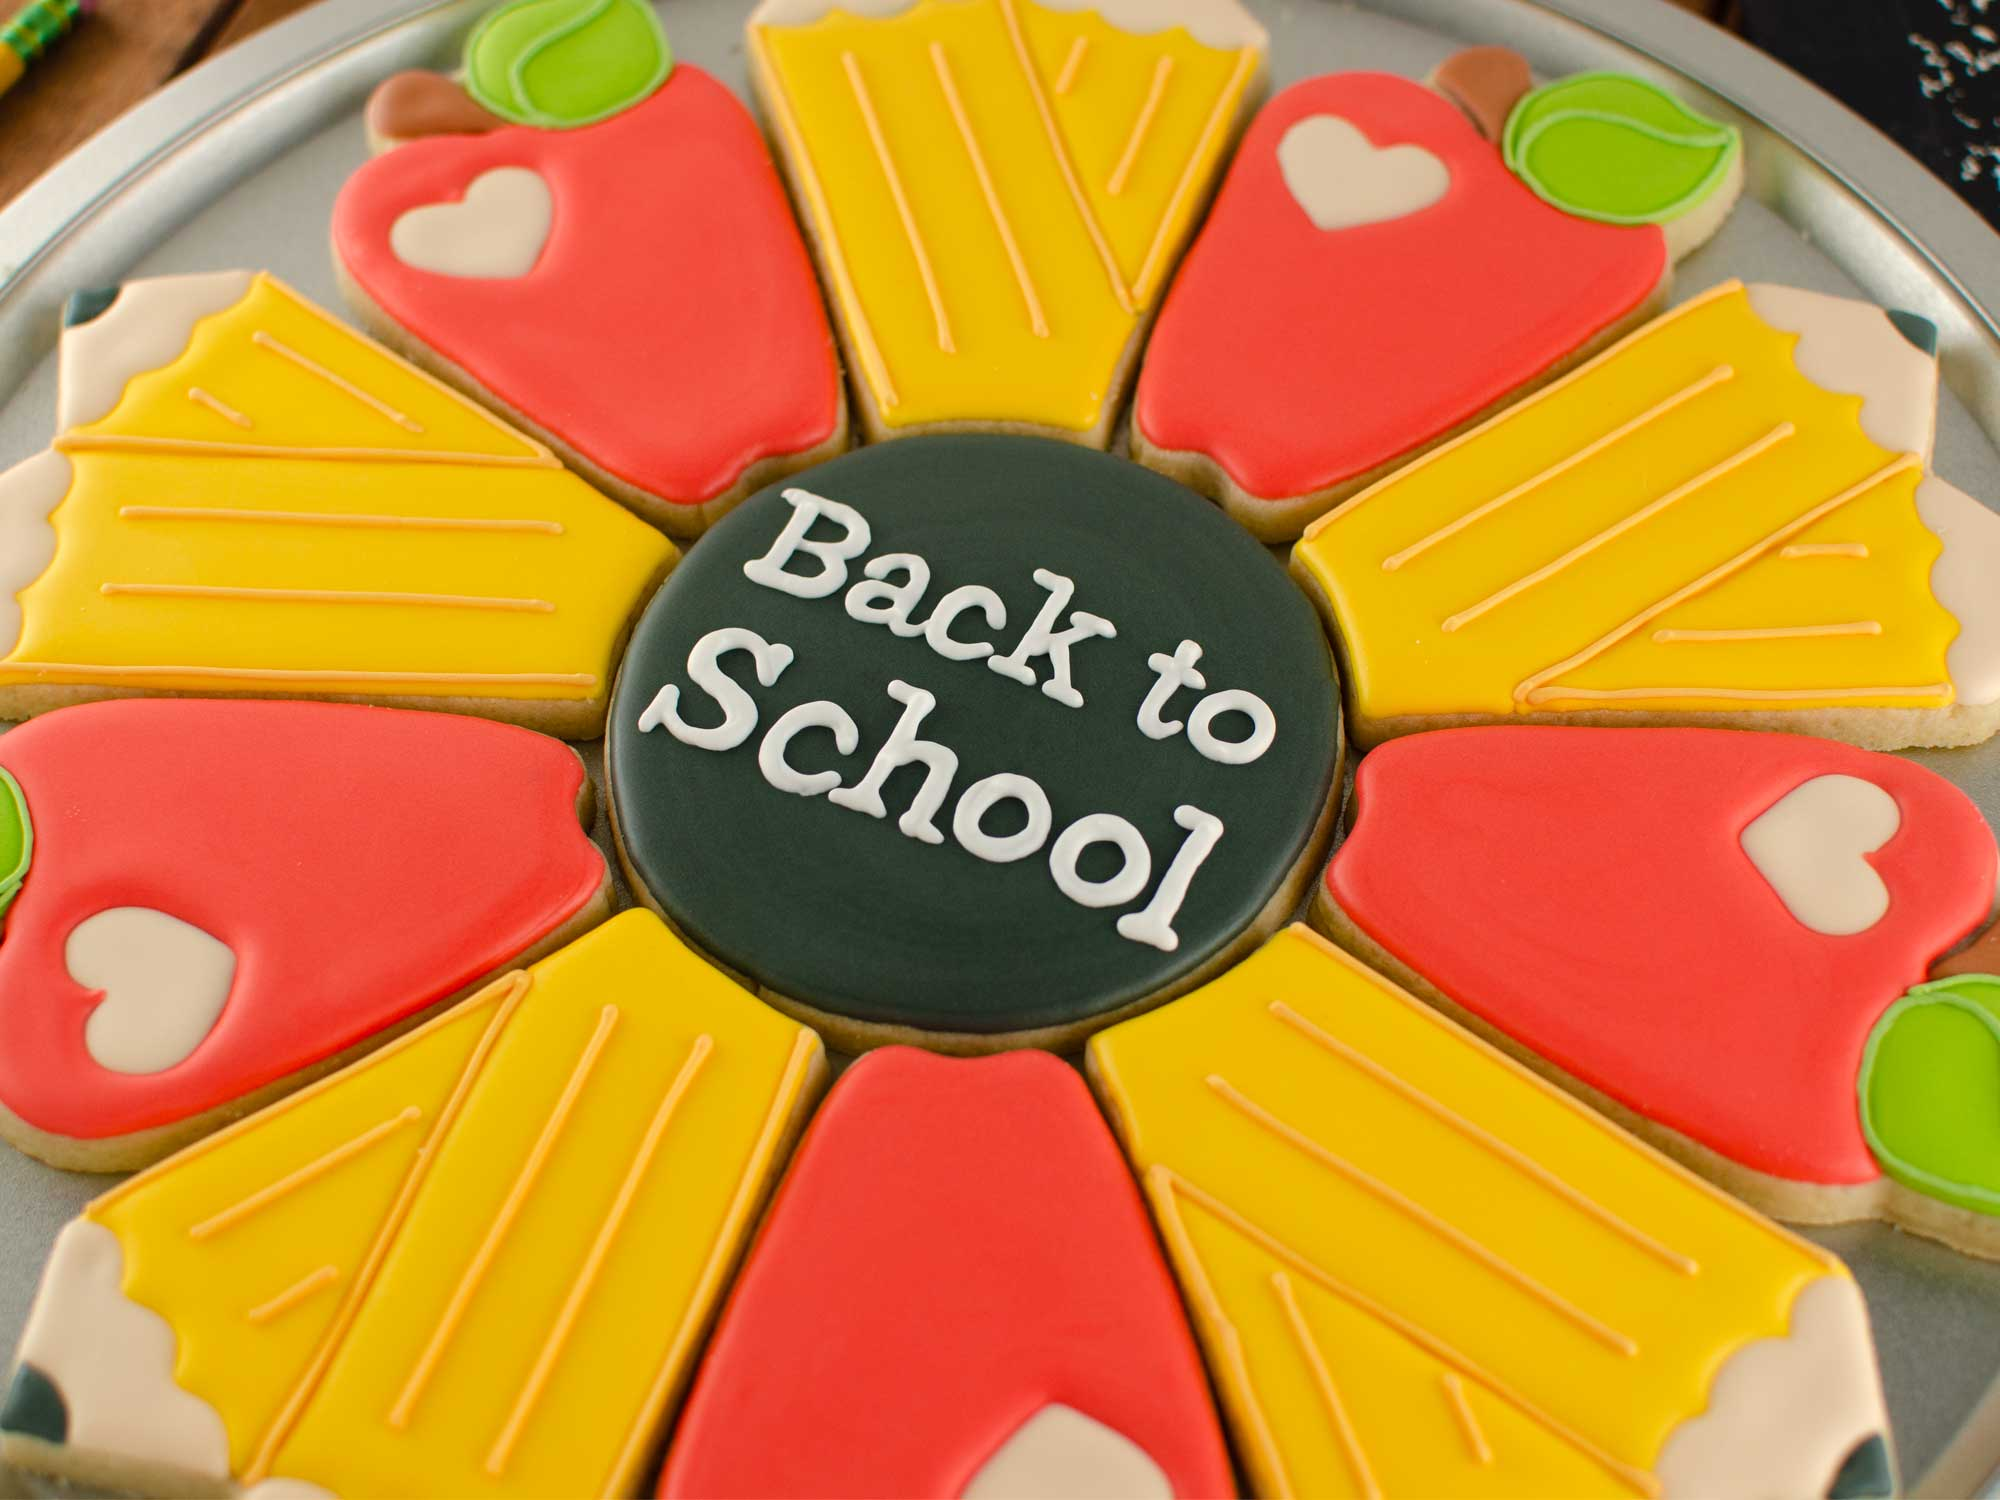 apple pencil cookie platter with back-to-school message